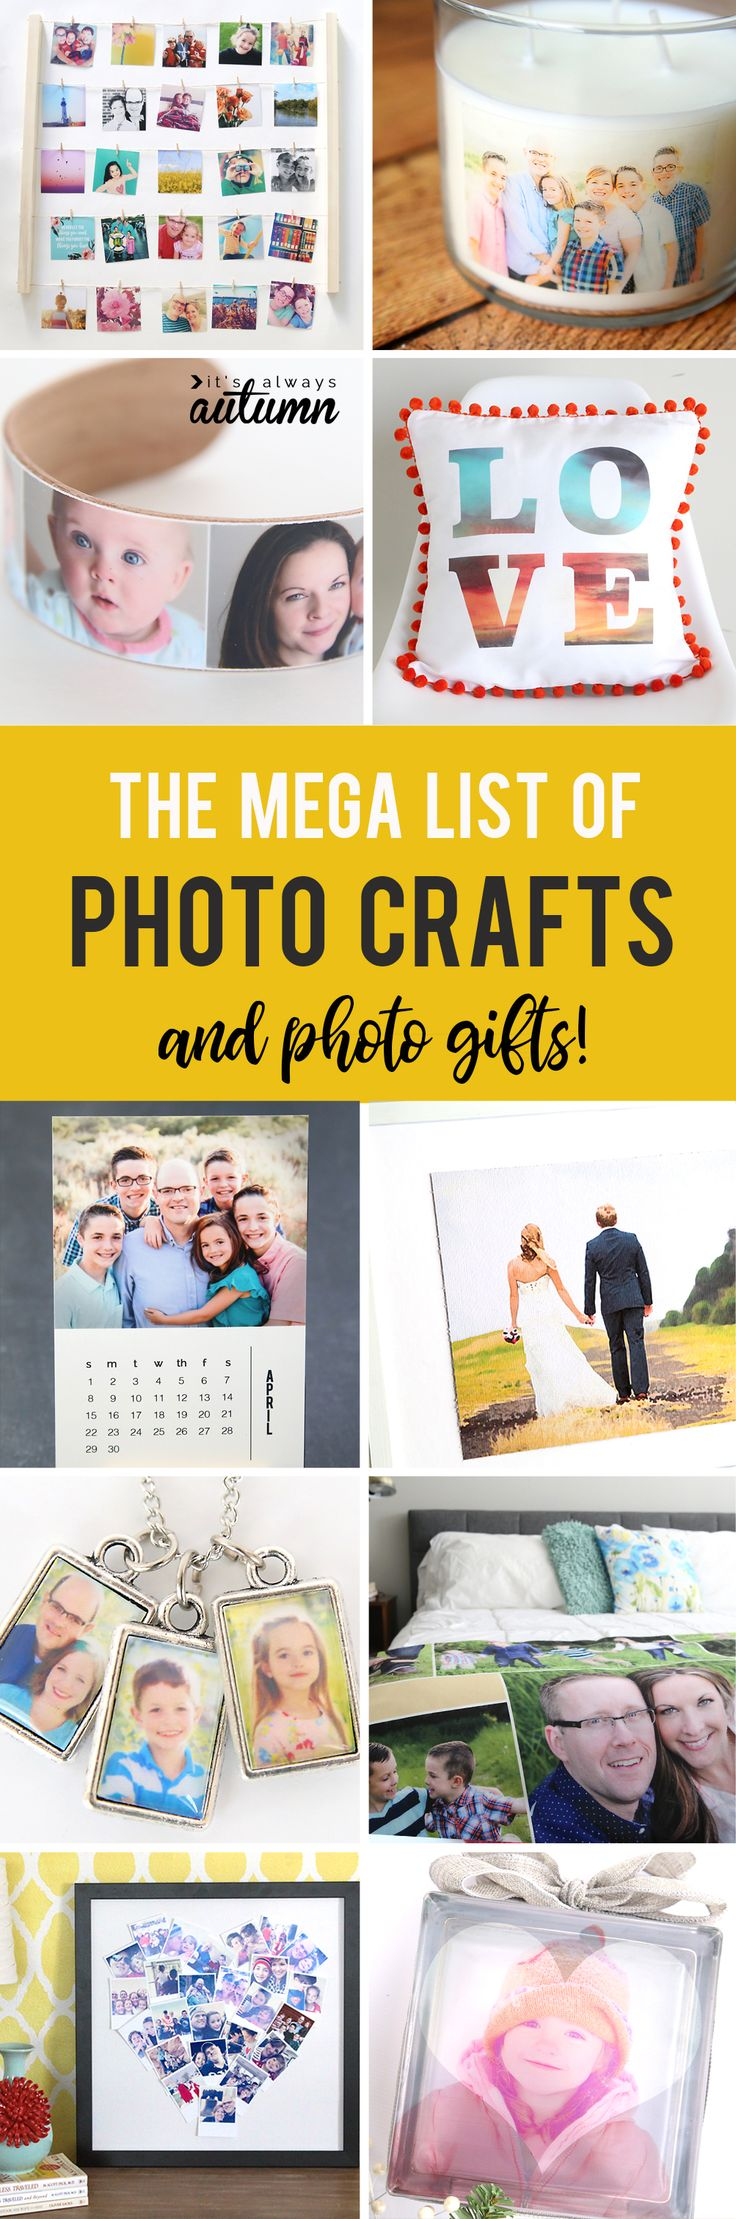 This is the best list of DIY photo crafts and photo gifts! Over 40 ideas for photo projects you can make.